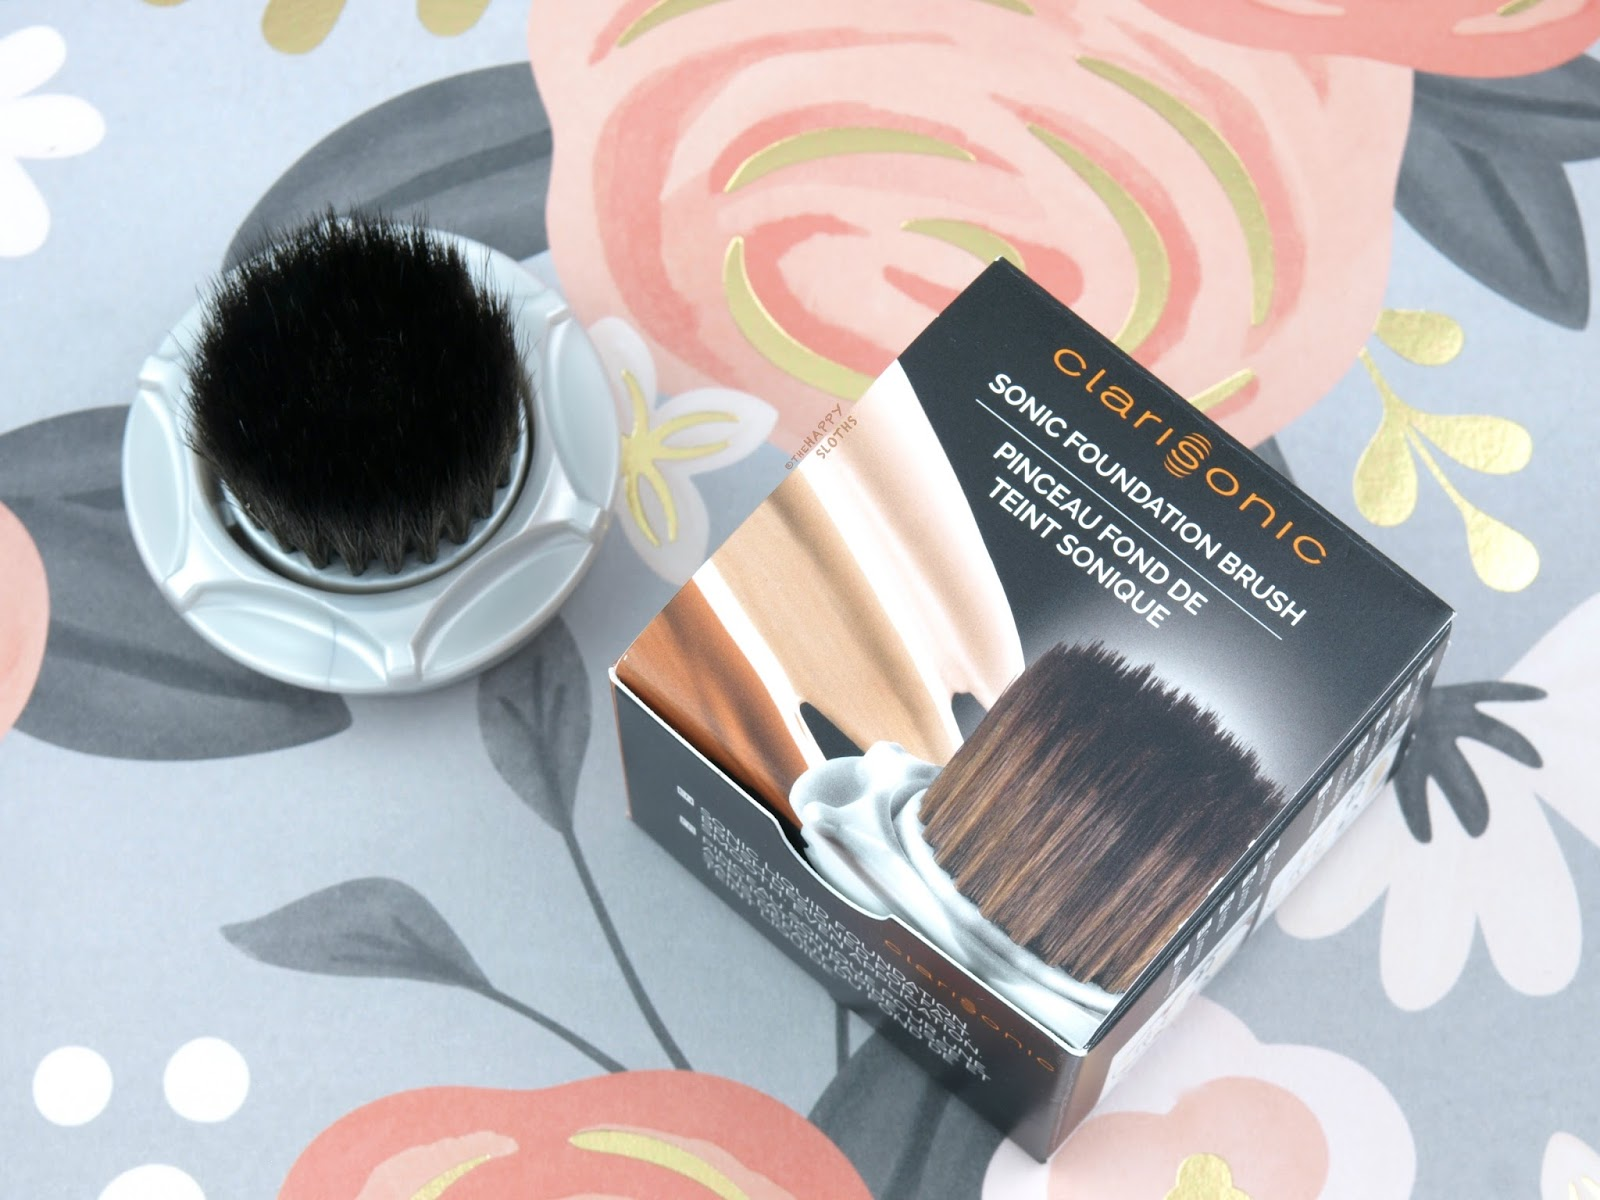 Clarisonic Sonic Foundation Brush Head: Review